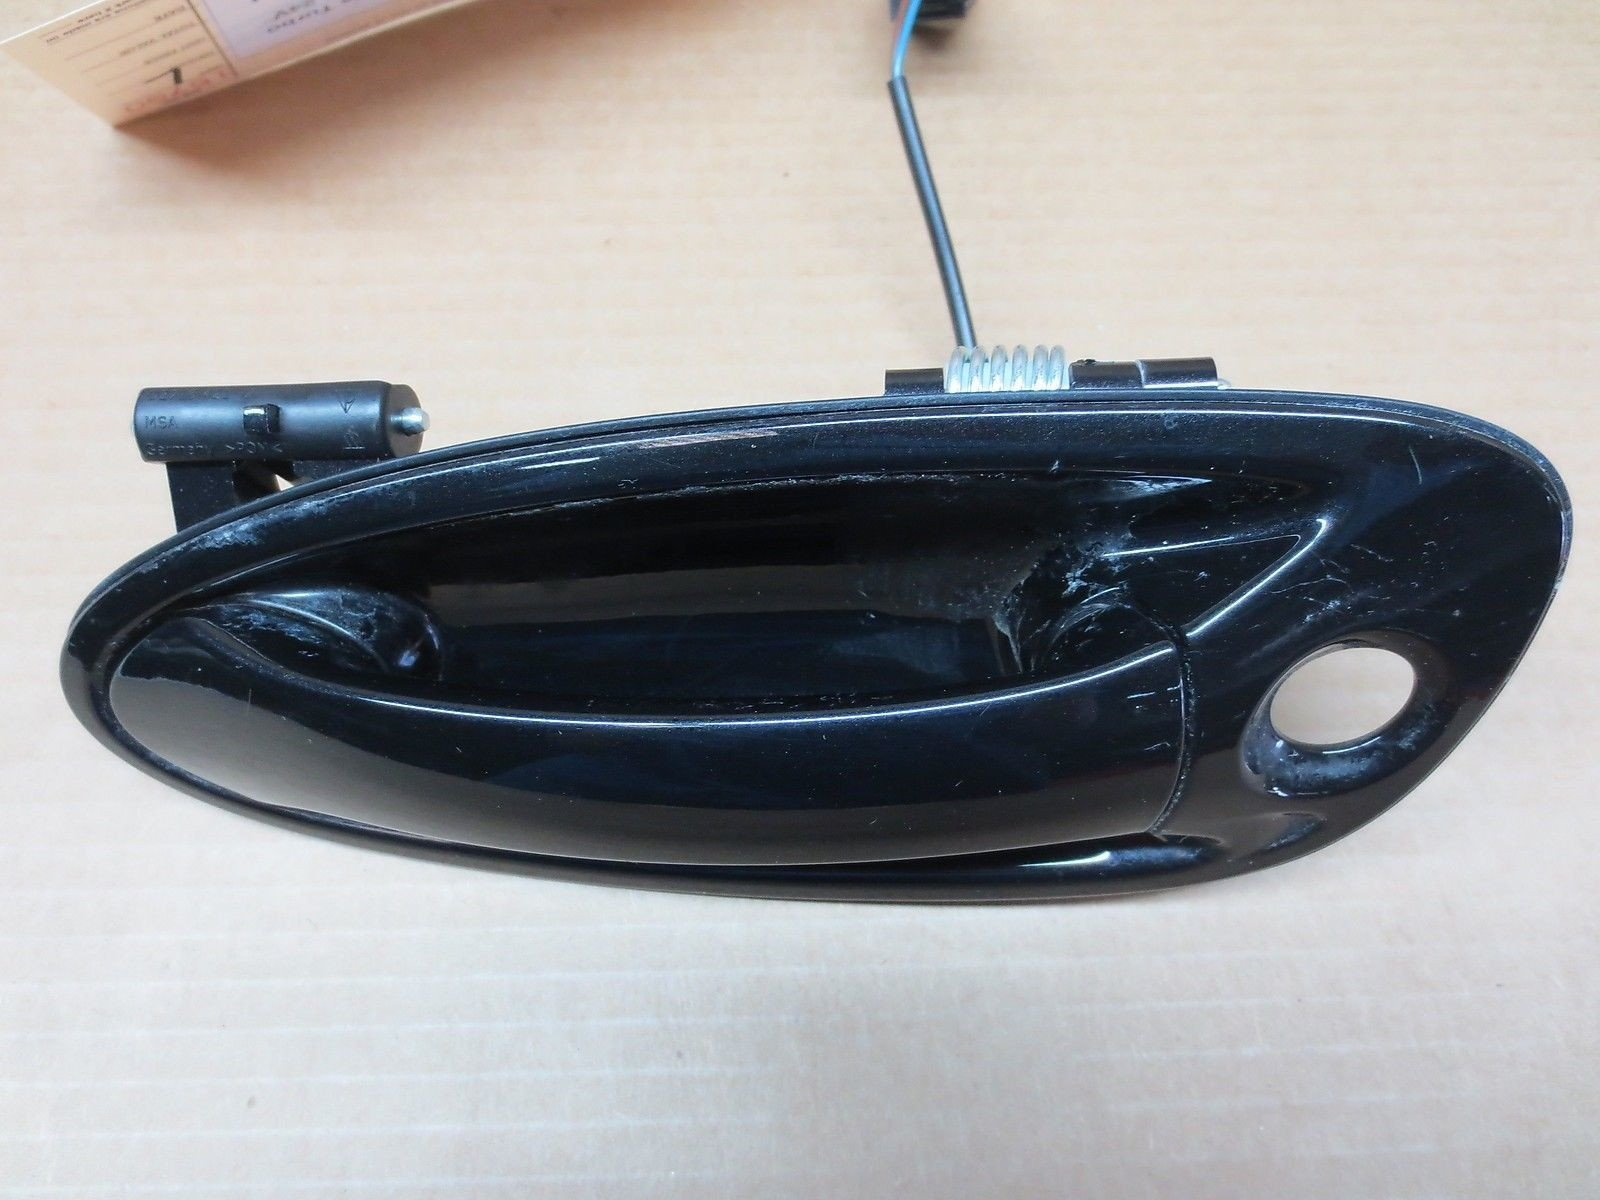 08 Porsche 911 Carrera Convertible TURBO 997 L BLACK EXTERIOR DOOR HANDLE 14,509